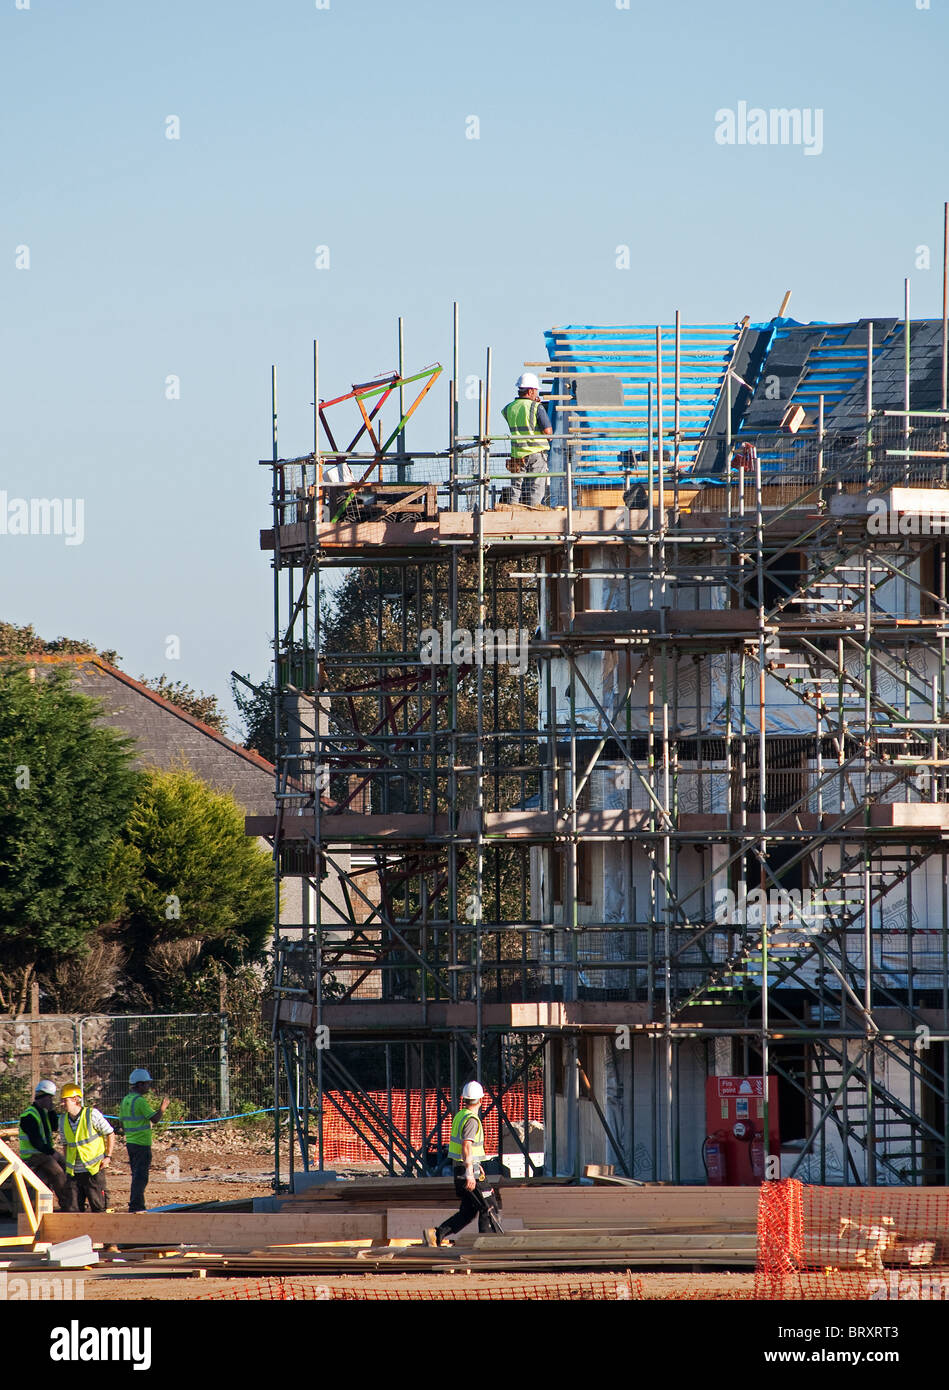 an affordable housing project under construction in Camborne, Cornwall, UK - Stock Image